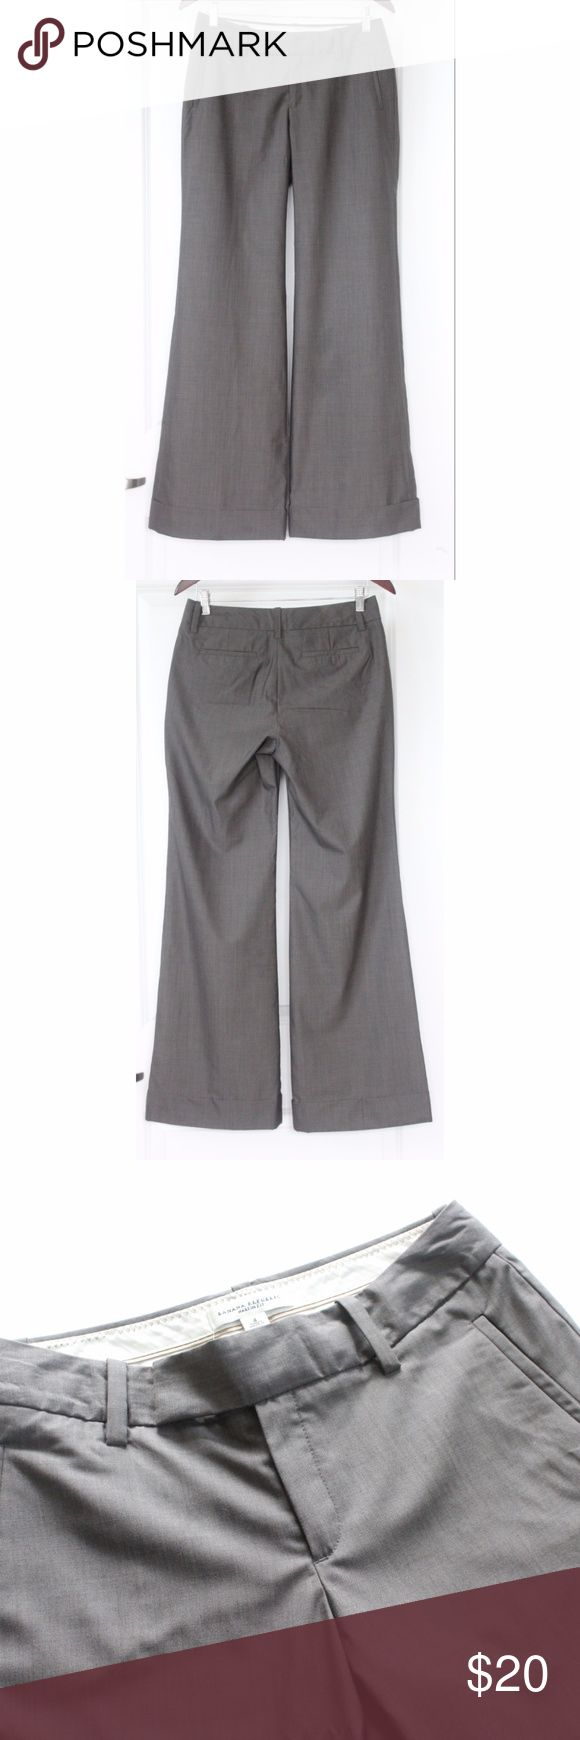 """BANANA REPUBLIC Martin Fit Wool Dress Pants Size 4 BANANA REPUBLIC Martin Fit Wool Dress Pants Size 4 Gray Stretch Women's Trouser Great Condition! Clean- no tears or stains noted. Small area of piling on front. Pics show accuracy of condition! From a pet & smoke free home  Measurements (approx):  inseam 33"""" waist 30"""" hips 36"""" Banana Republic Pants Wide Leg"""